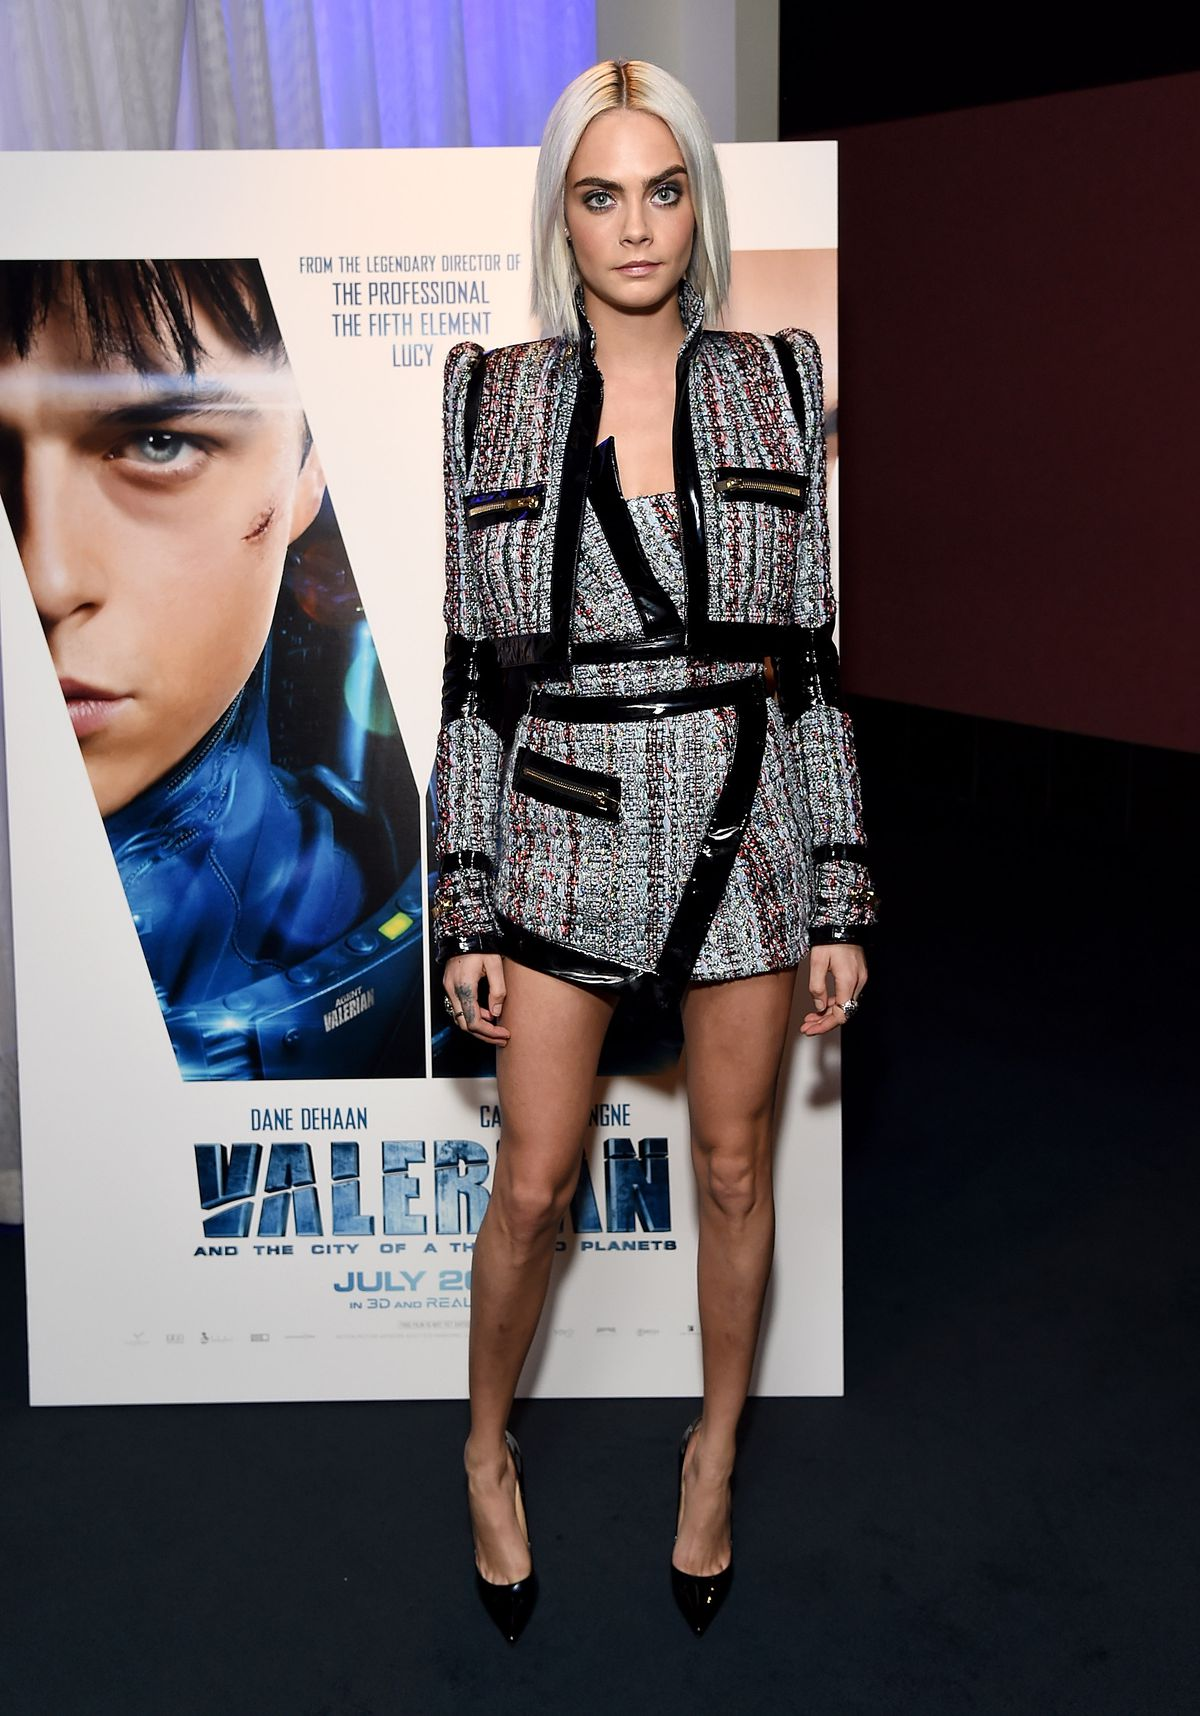 Actress Cara Delevingne attends the trailer viewing of 'Valerian and The City of a Thousand Planets' on March 27, 2017 in Los Angeles, California.